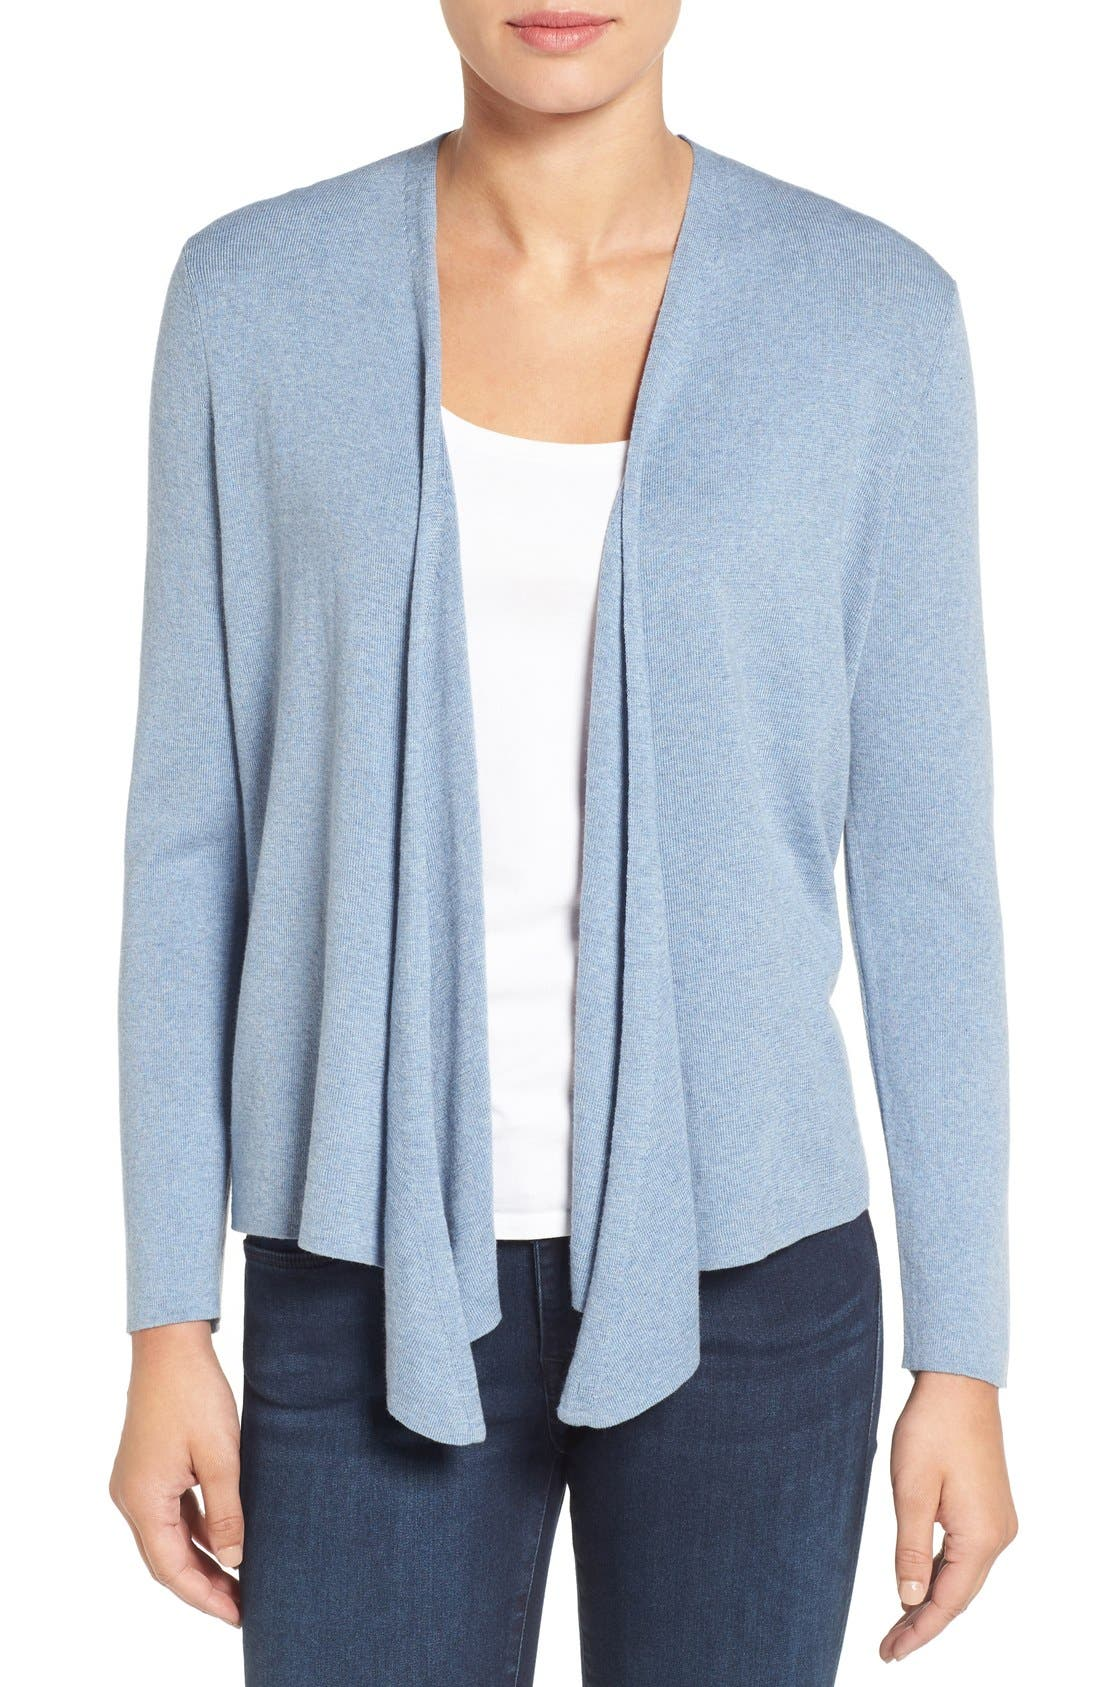 Alternate Image 1 Selected - NIC+ZOE Four-Way Convertible Cardigan (Regular & Petite)